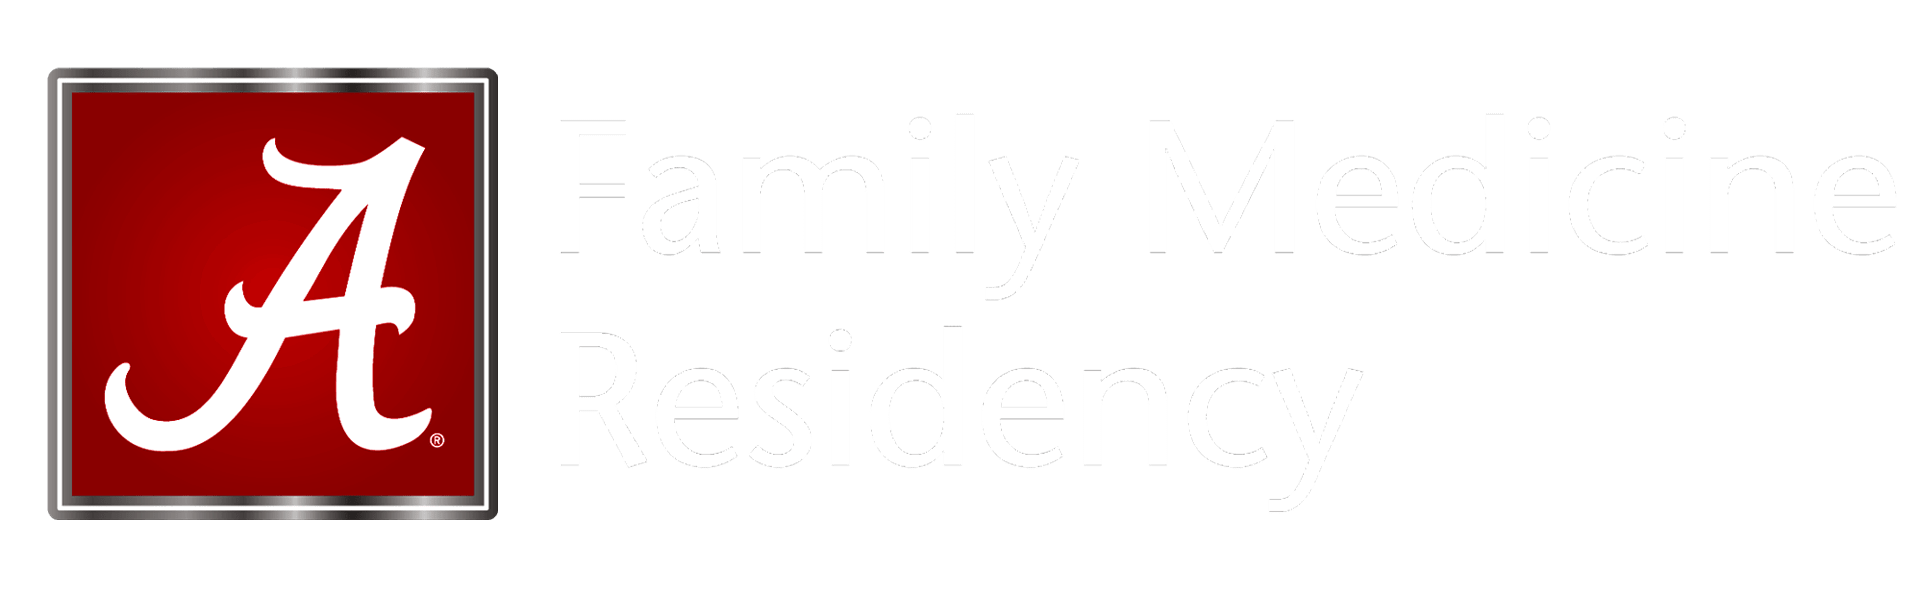 The University of Alabama Family Medicine Residency – The